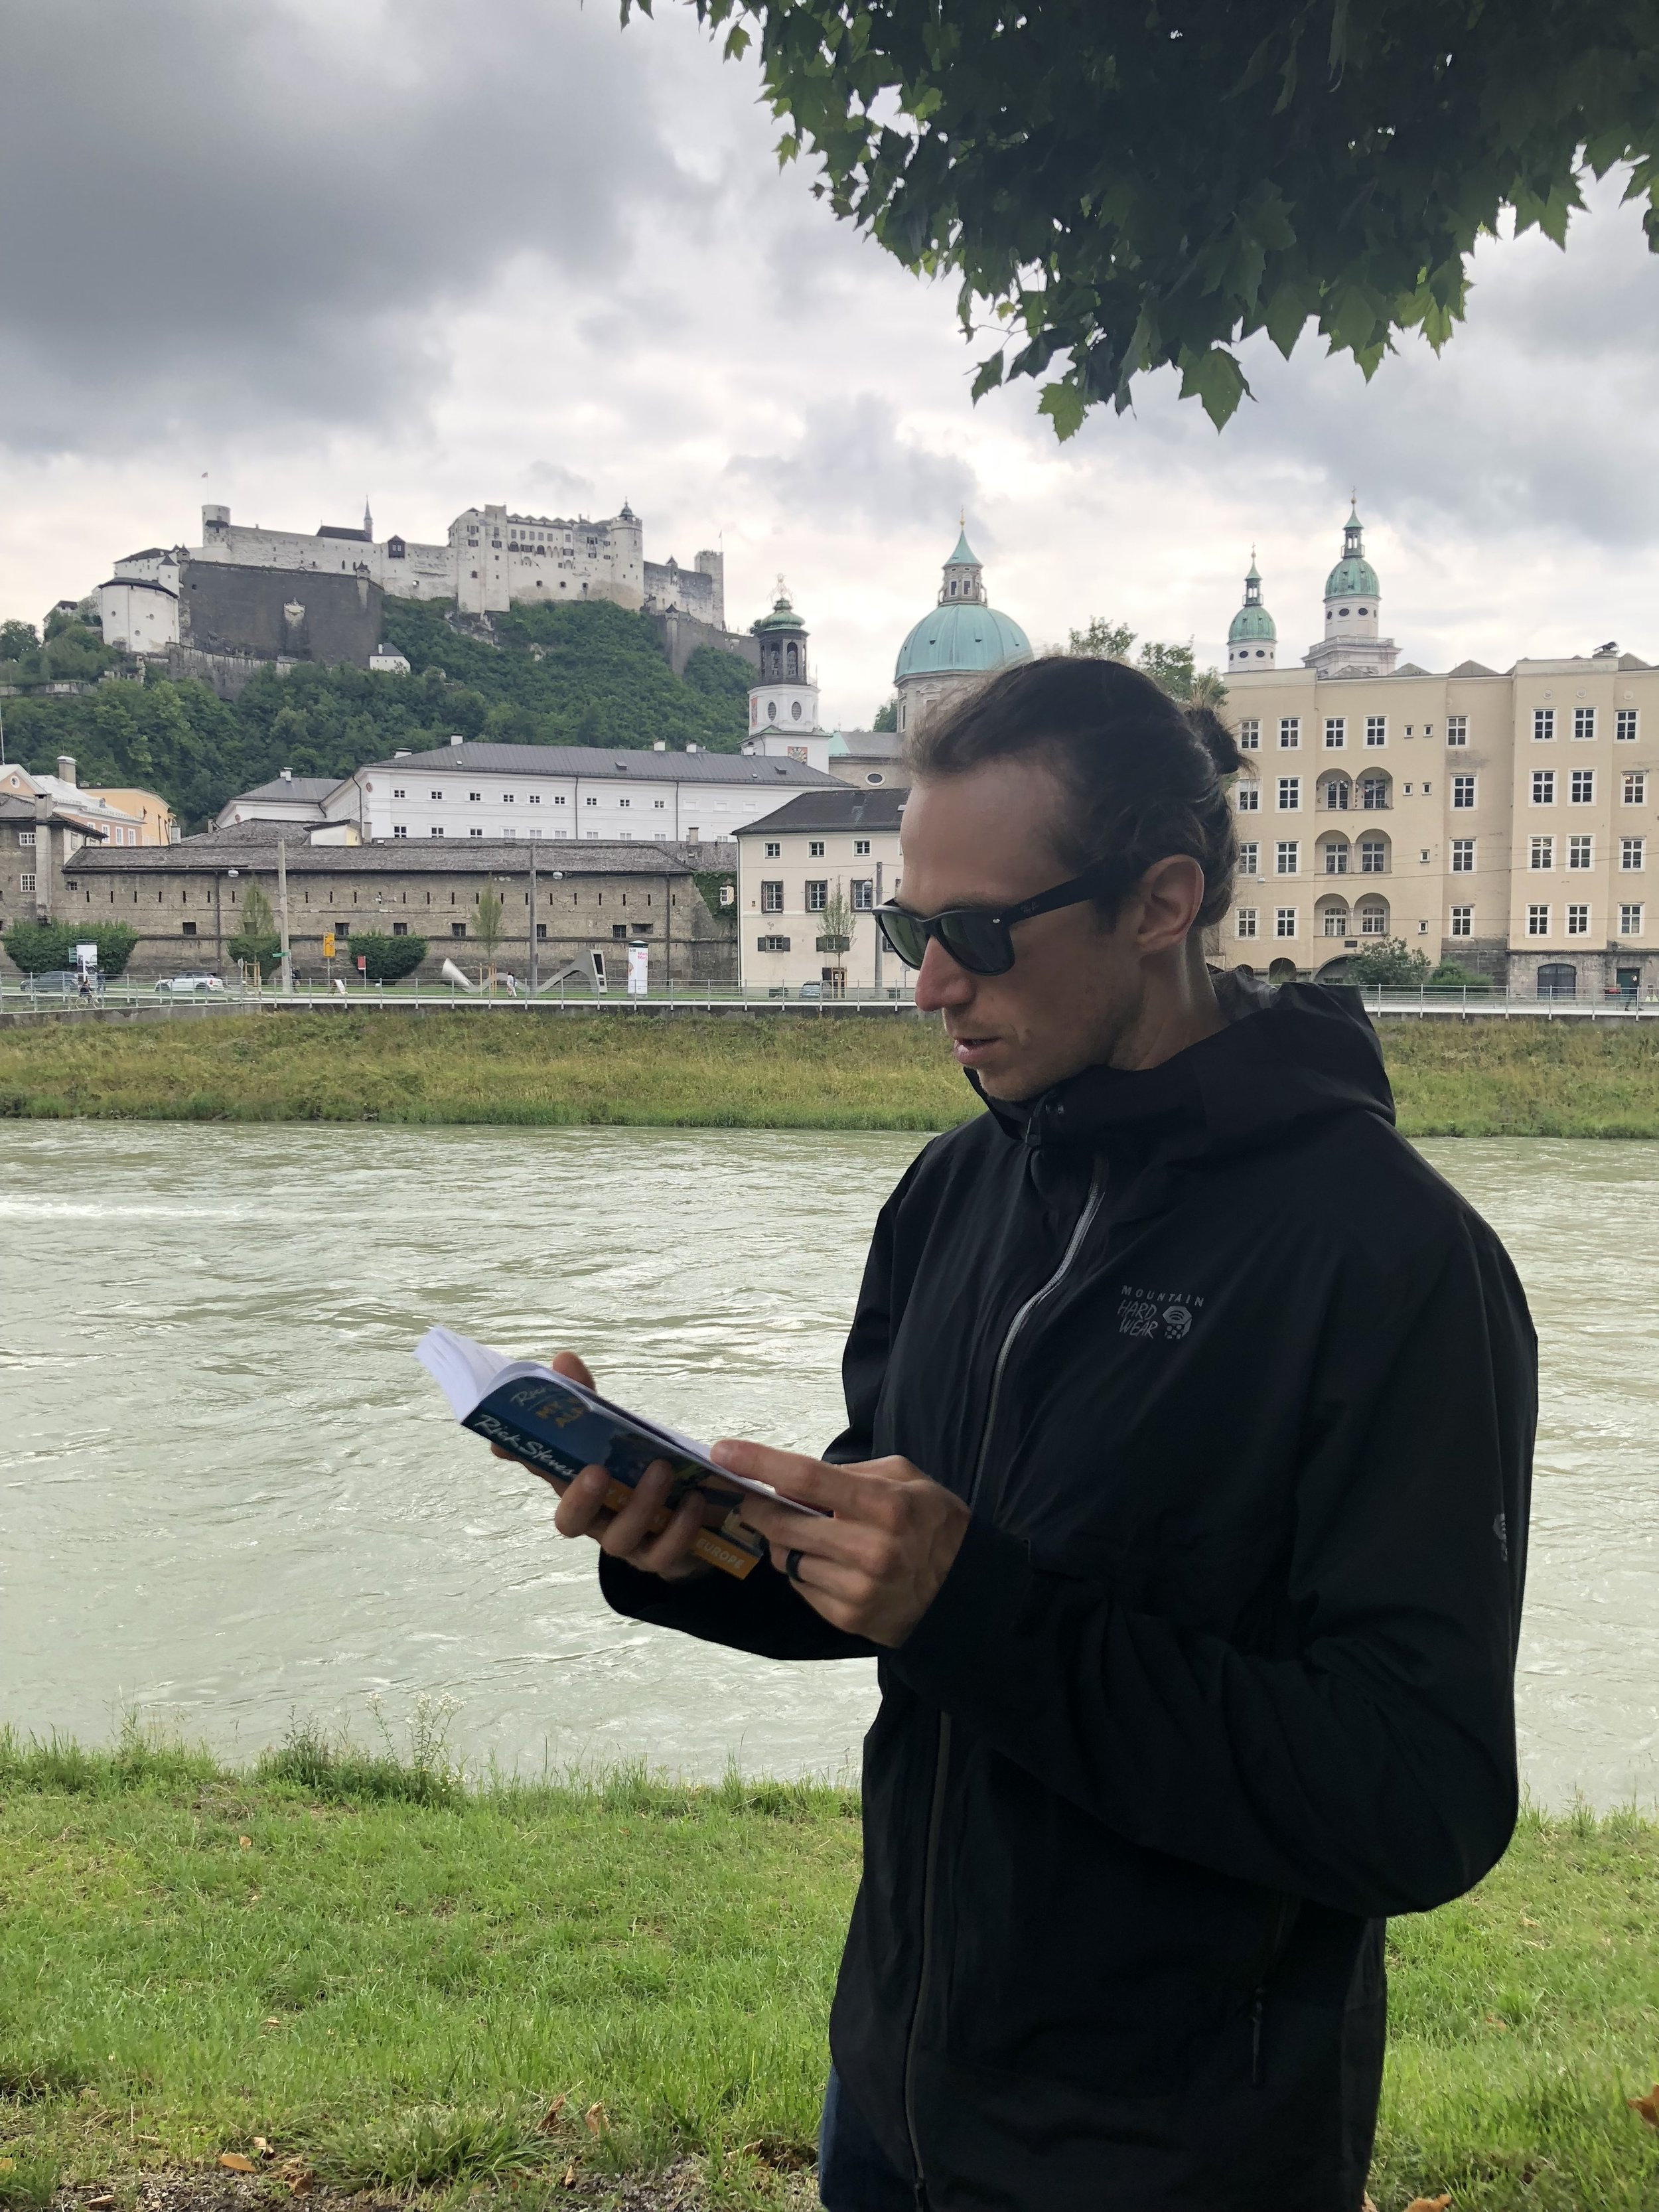 Spencer reading from the guidebook as we followed Rick's city walk through Salzburg